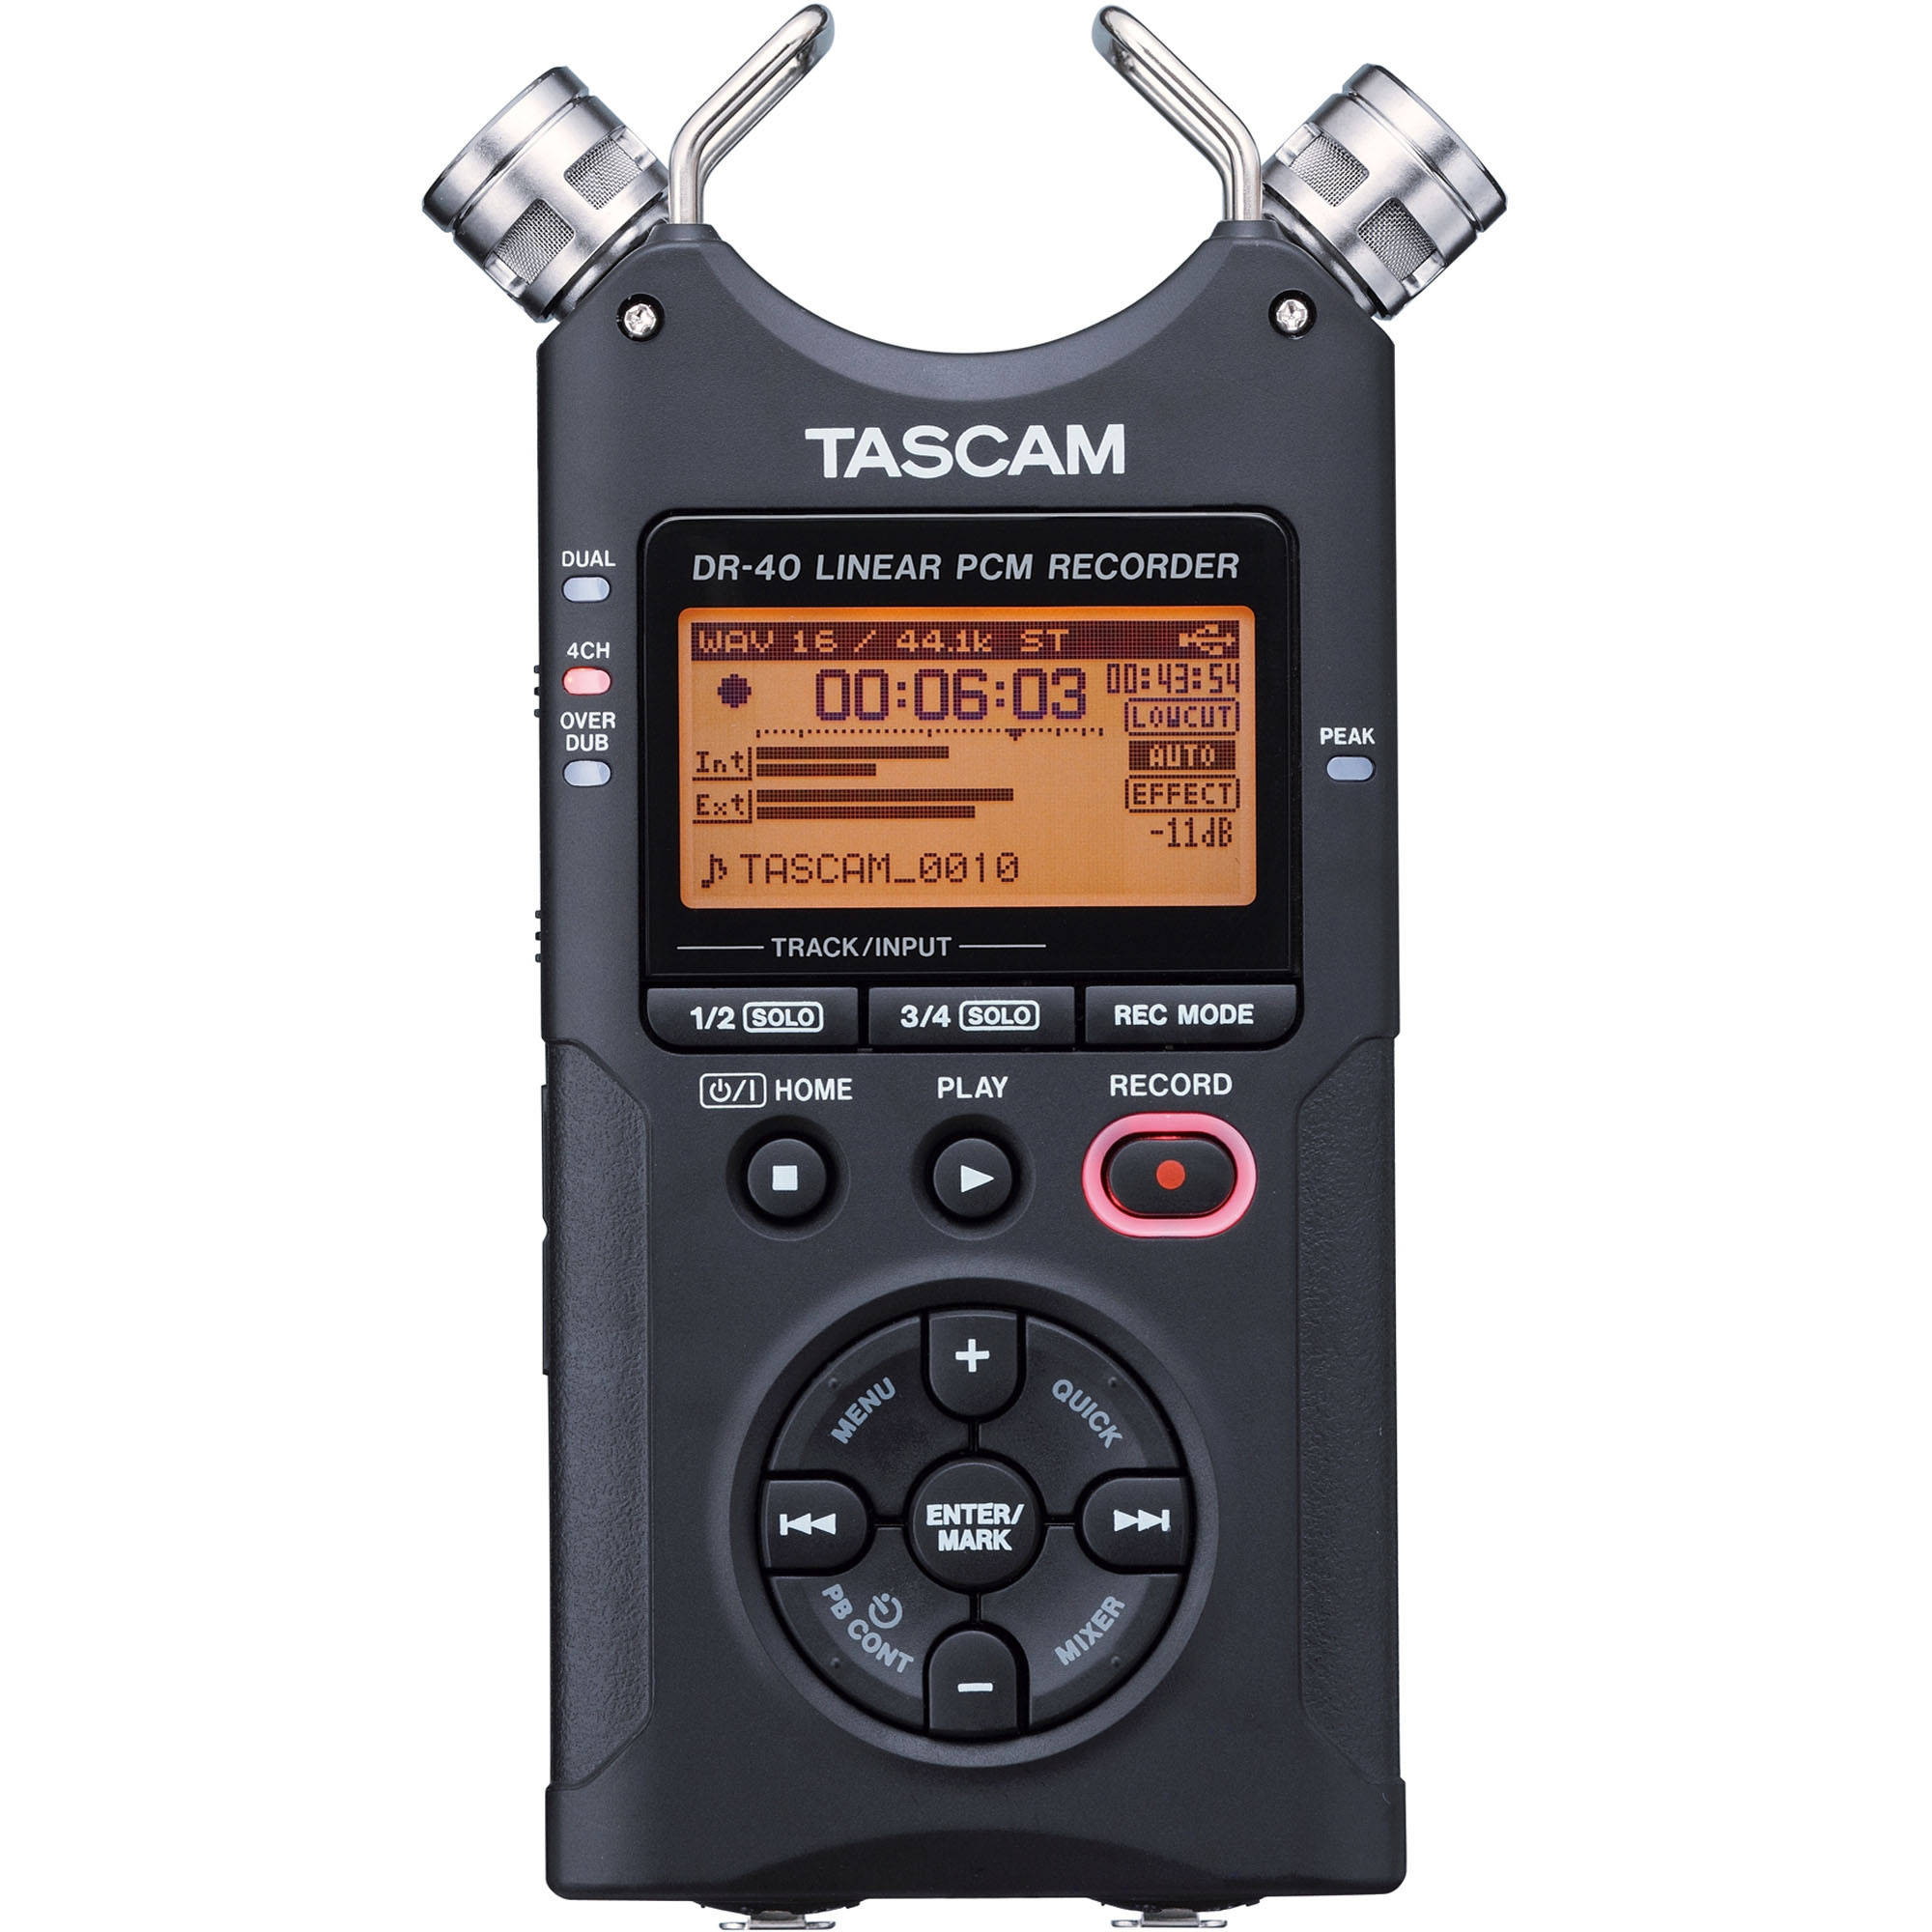 New, Never Used, TASCAM DR-40 Portable Digital 24 bit 4 Track Recorder plus Accessories Package